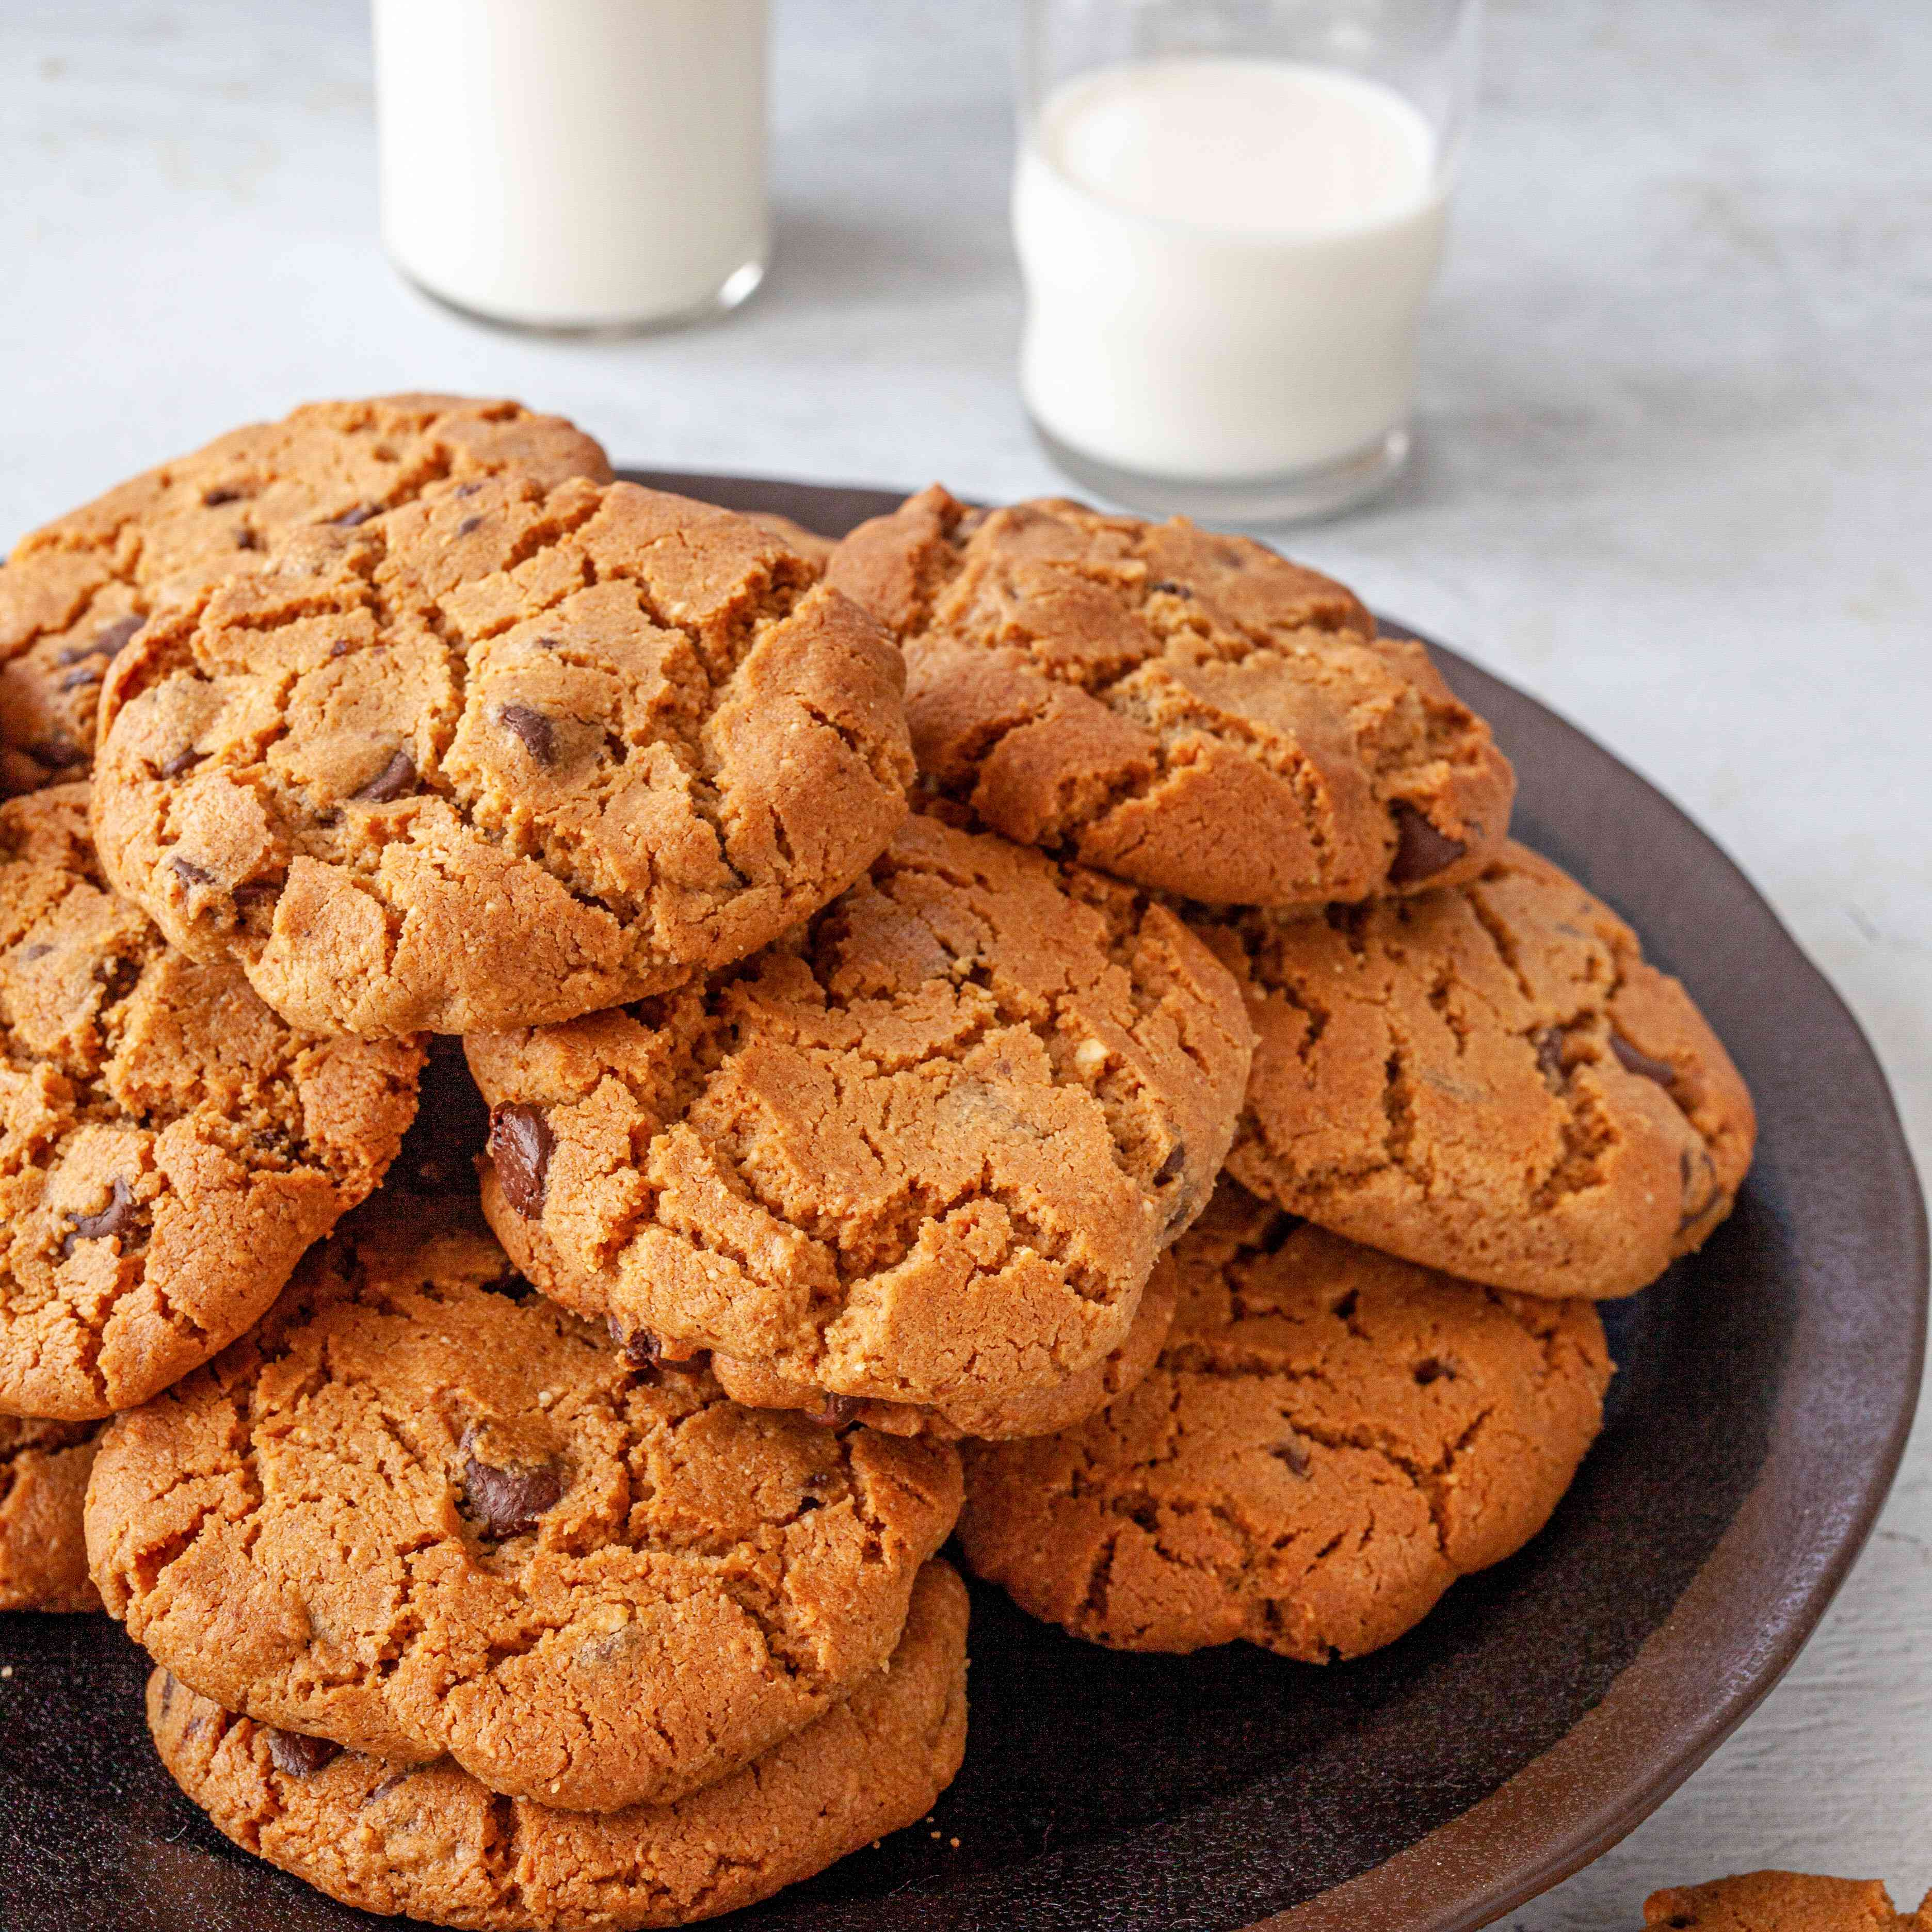 Gluten-Free Peanut Butter Chocolate Chip Cookies stacked on a plate.